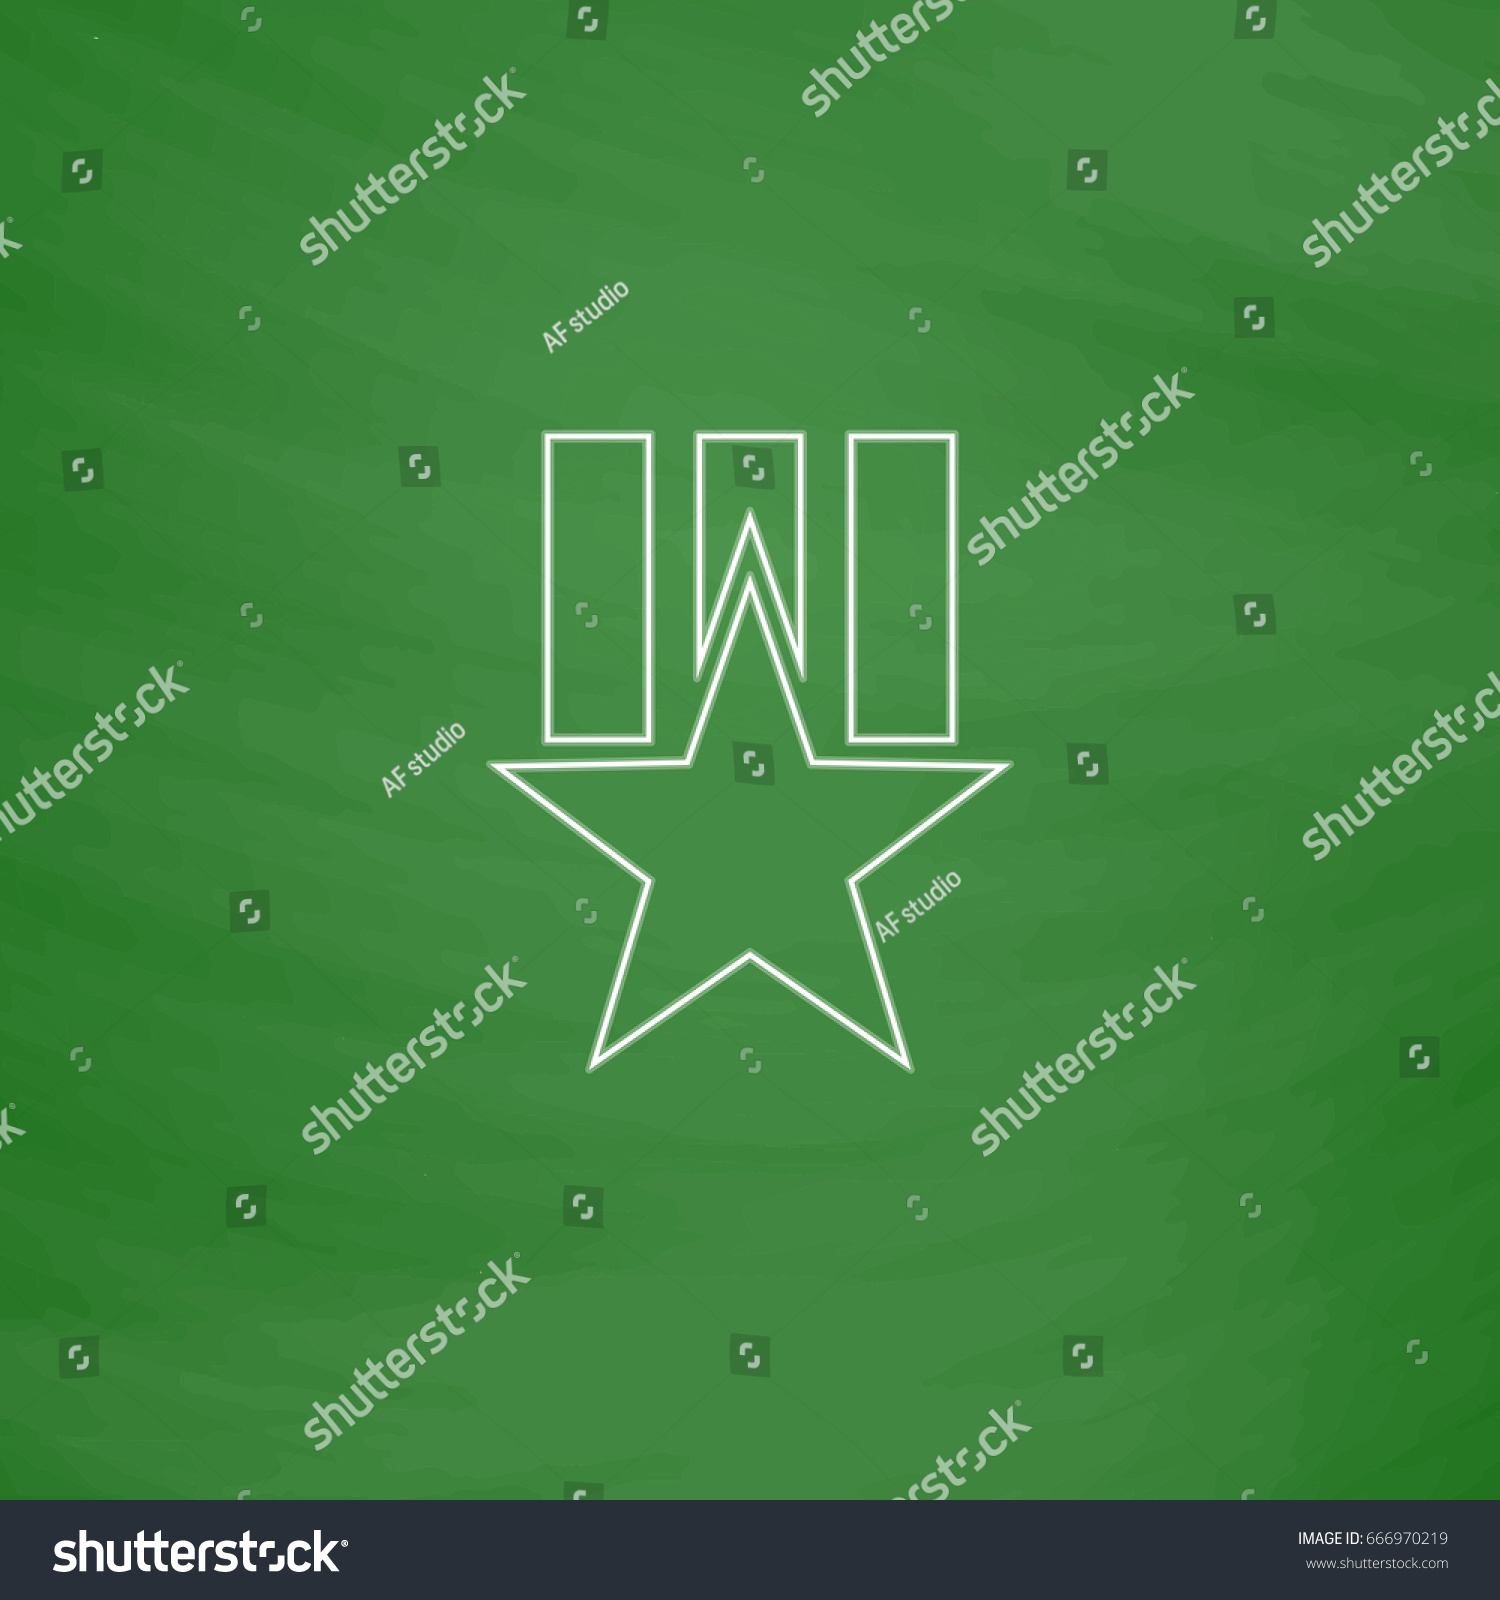 Order star outline icon imitation draw stock illustration order star outline icon imitation draw with white chalk on green chalkboard flat pictogram sciox Images